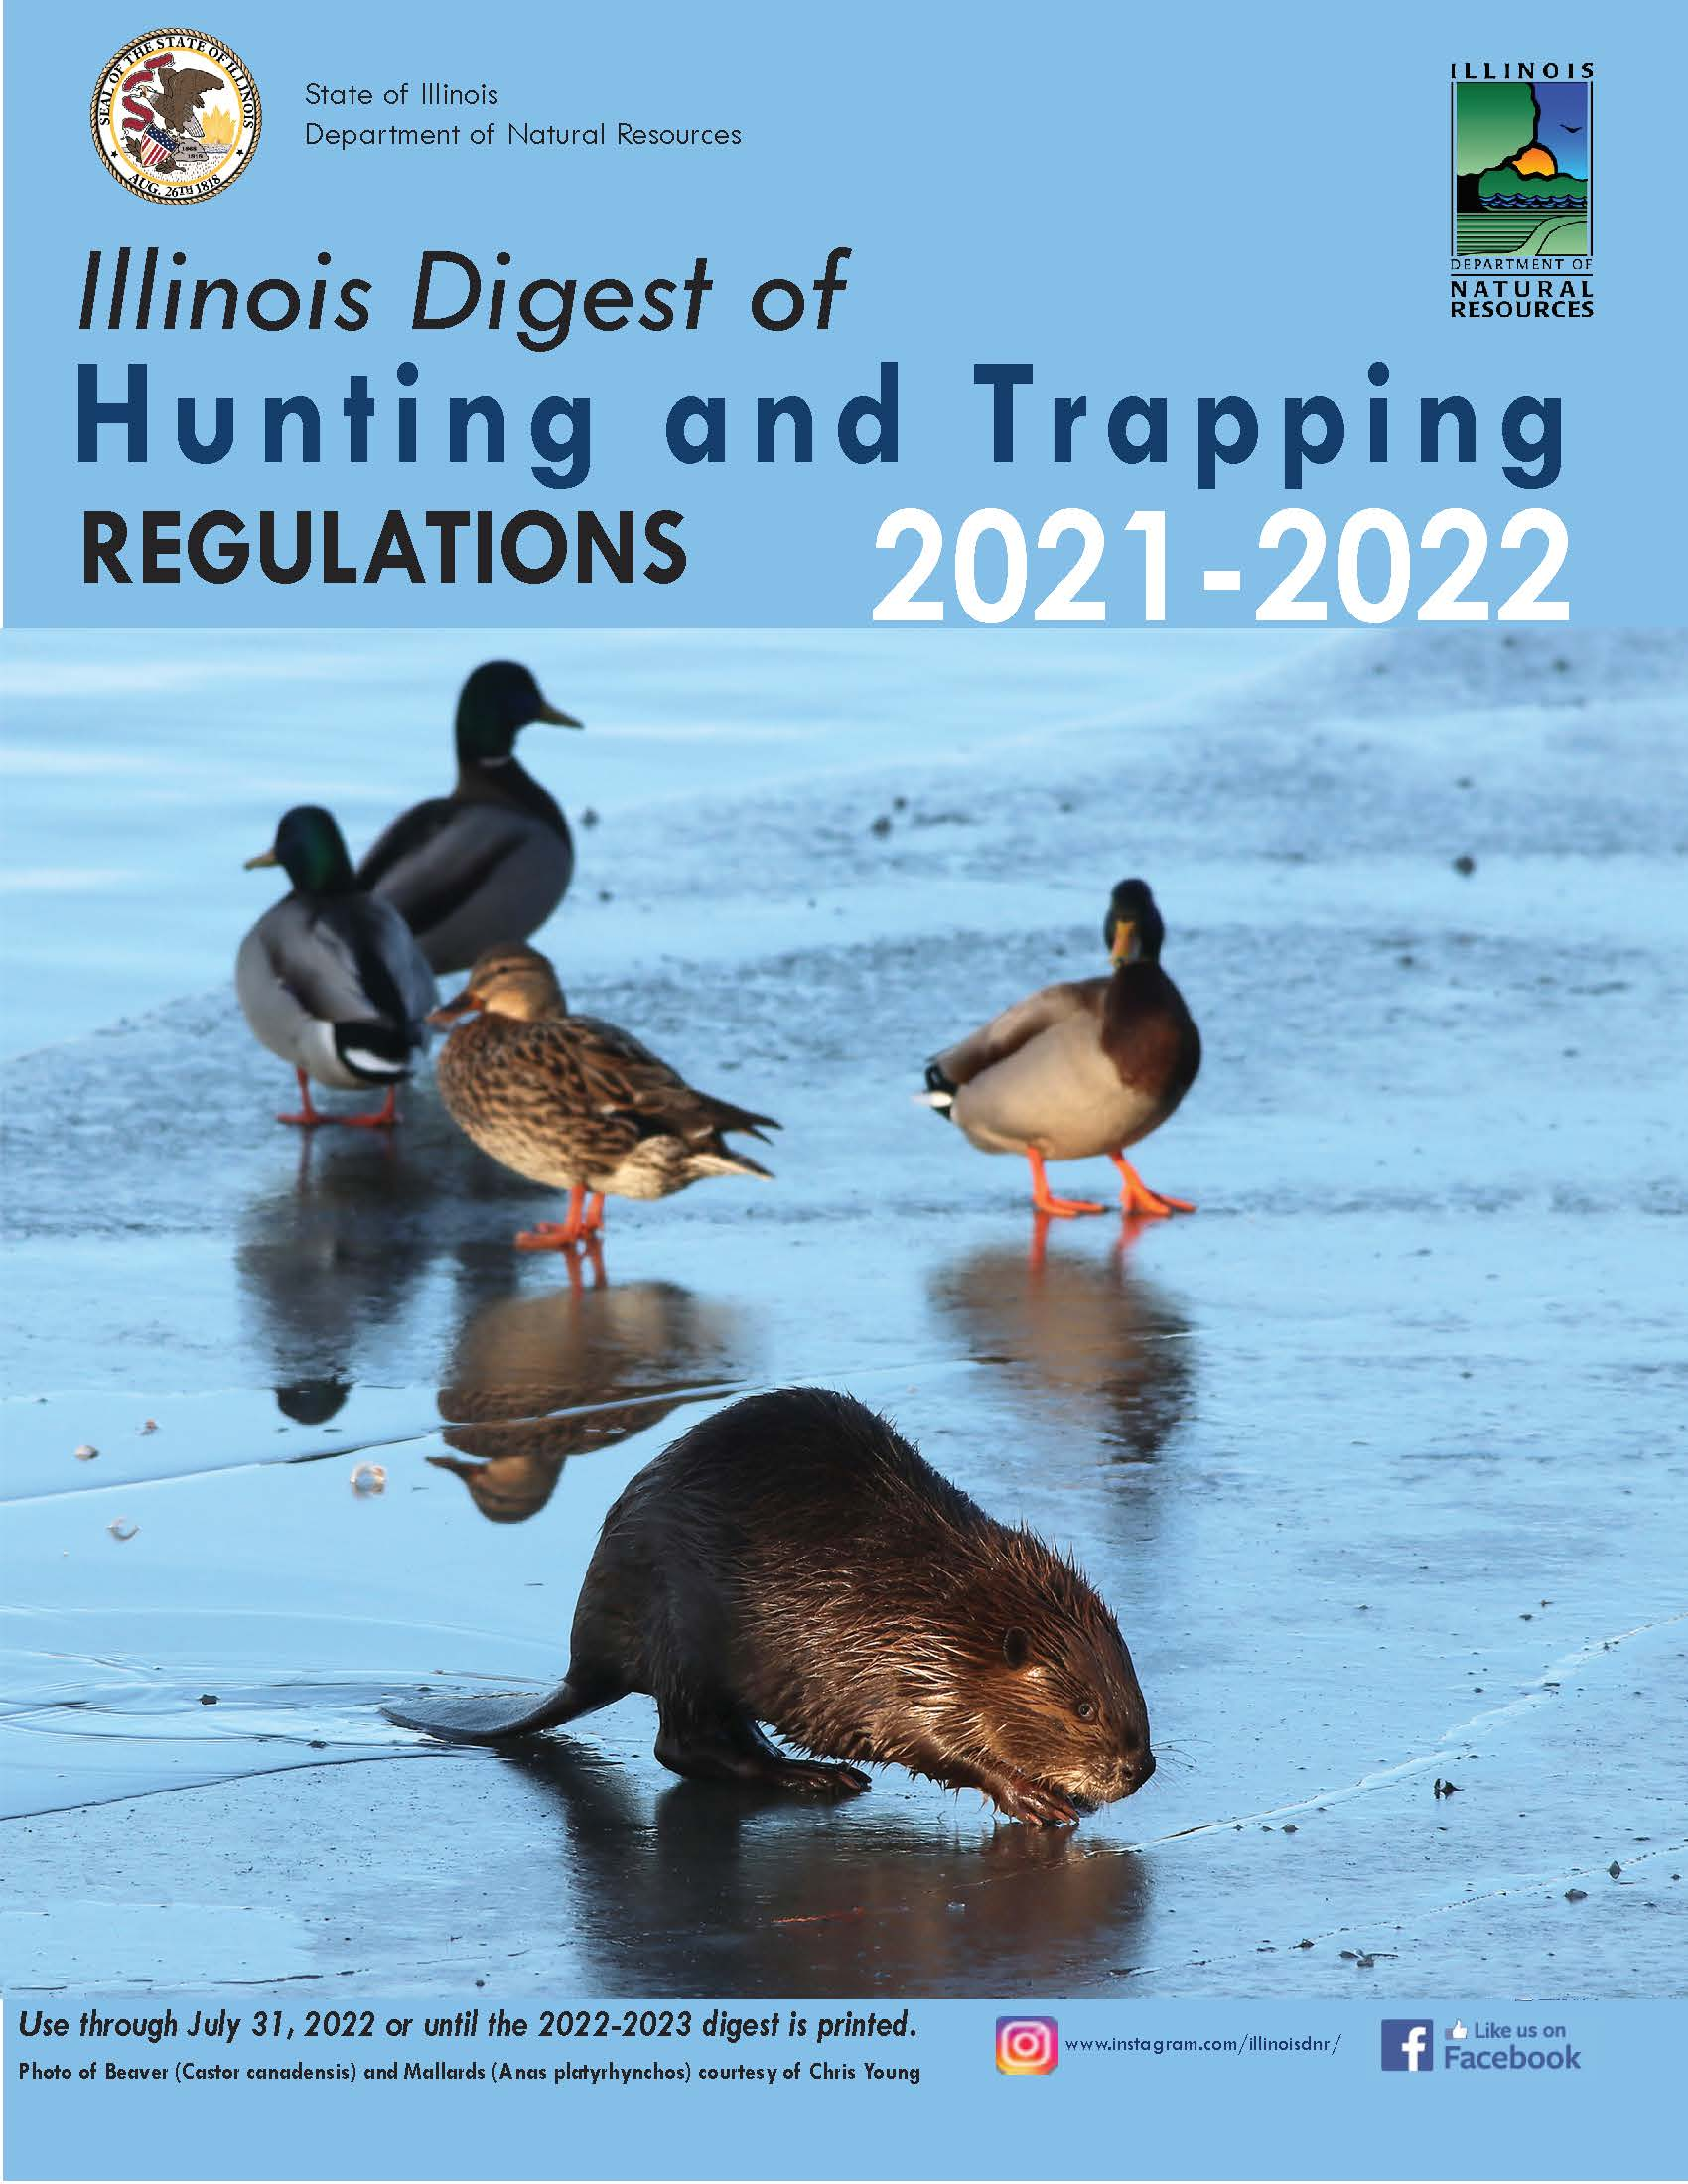 The cover of the new Illinois Digest of Hunting and Trapping Regulations for 2021–2022. The photo on the cover is a frozen wetland with a group of mallard ducks and a beaver on top of the ice.